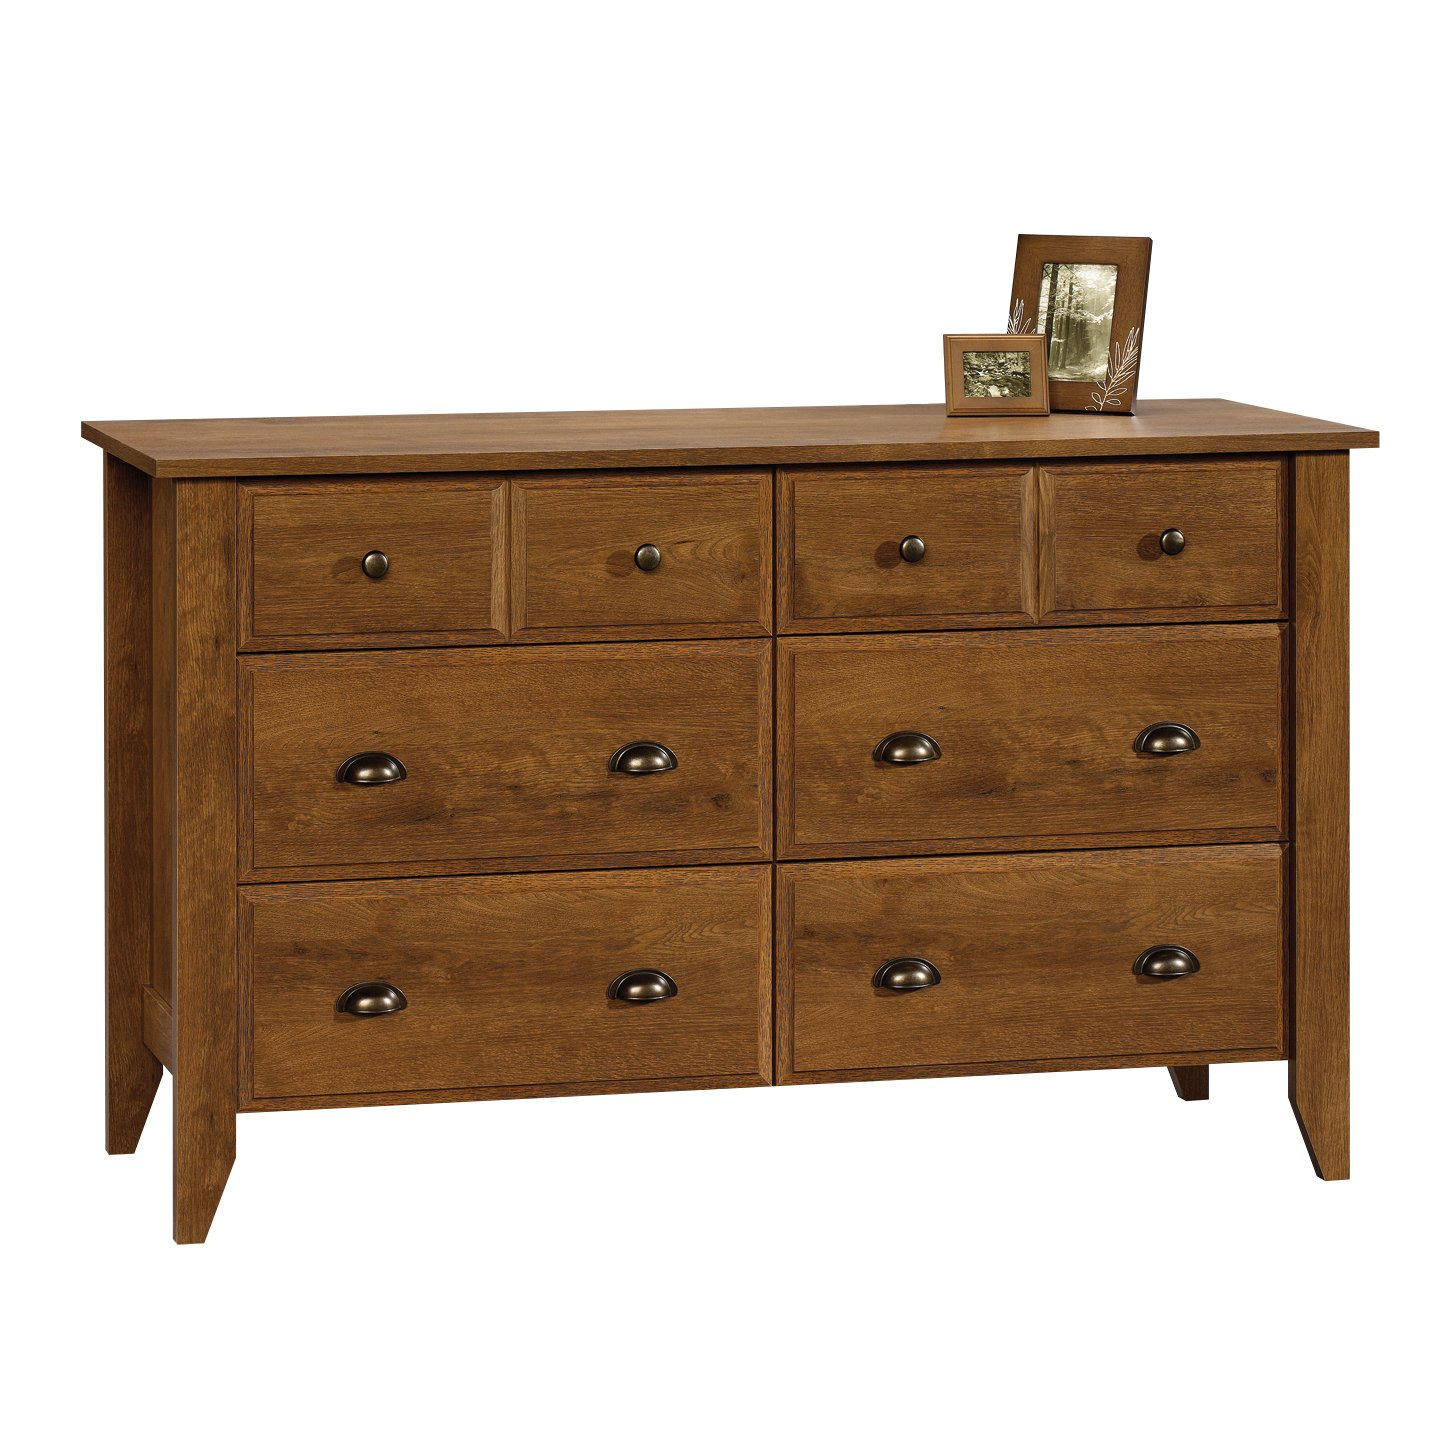 large bedroom dresser storage drawer modern 6 wood chest 11198 | 71nswmsiadl sl1456